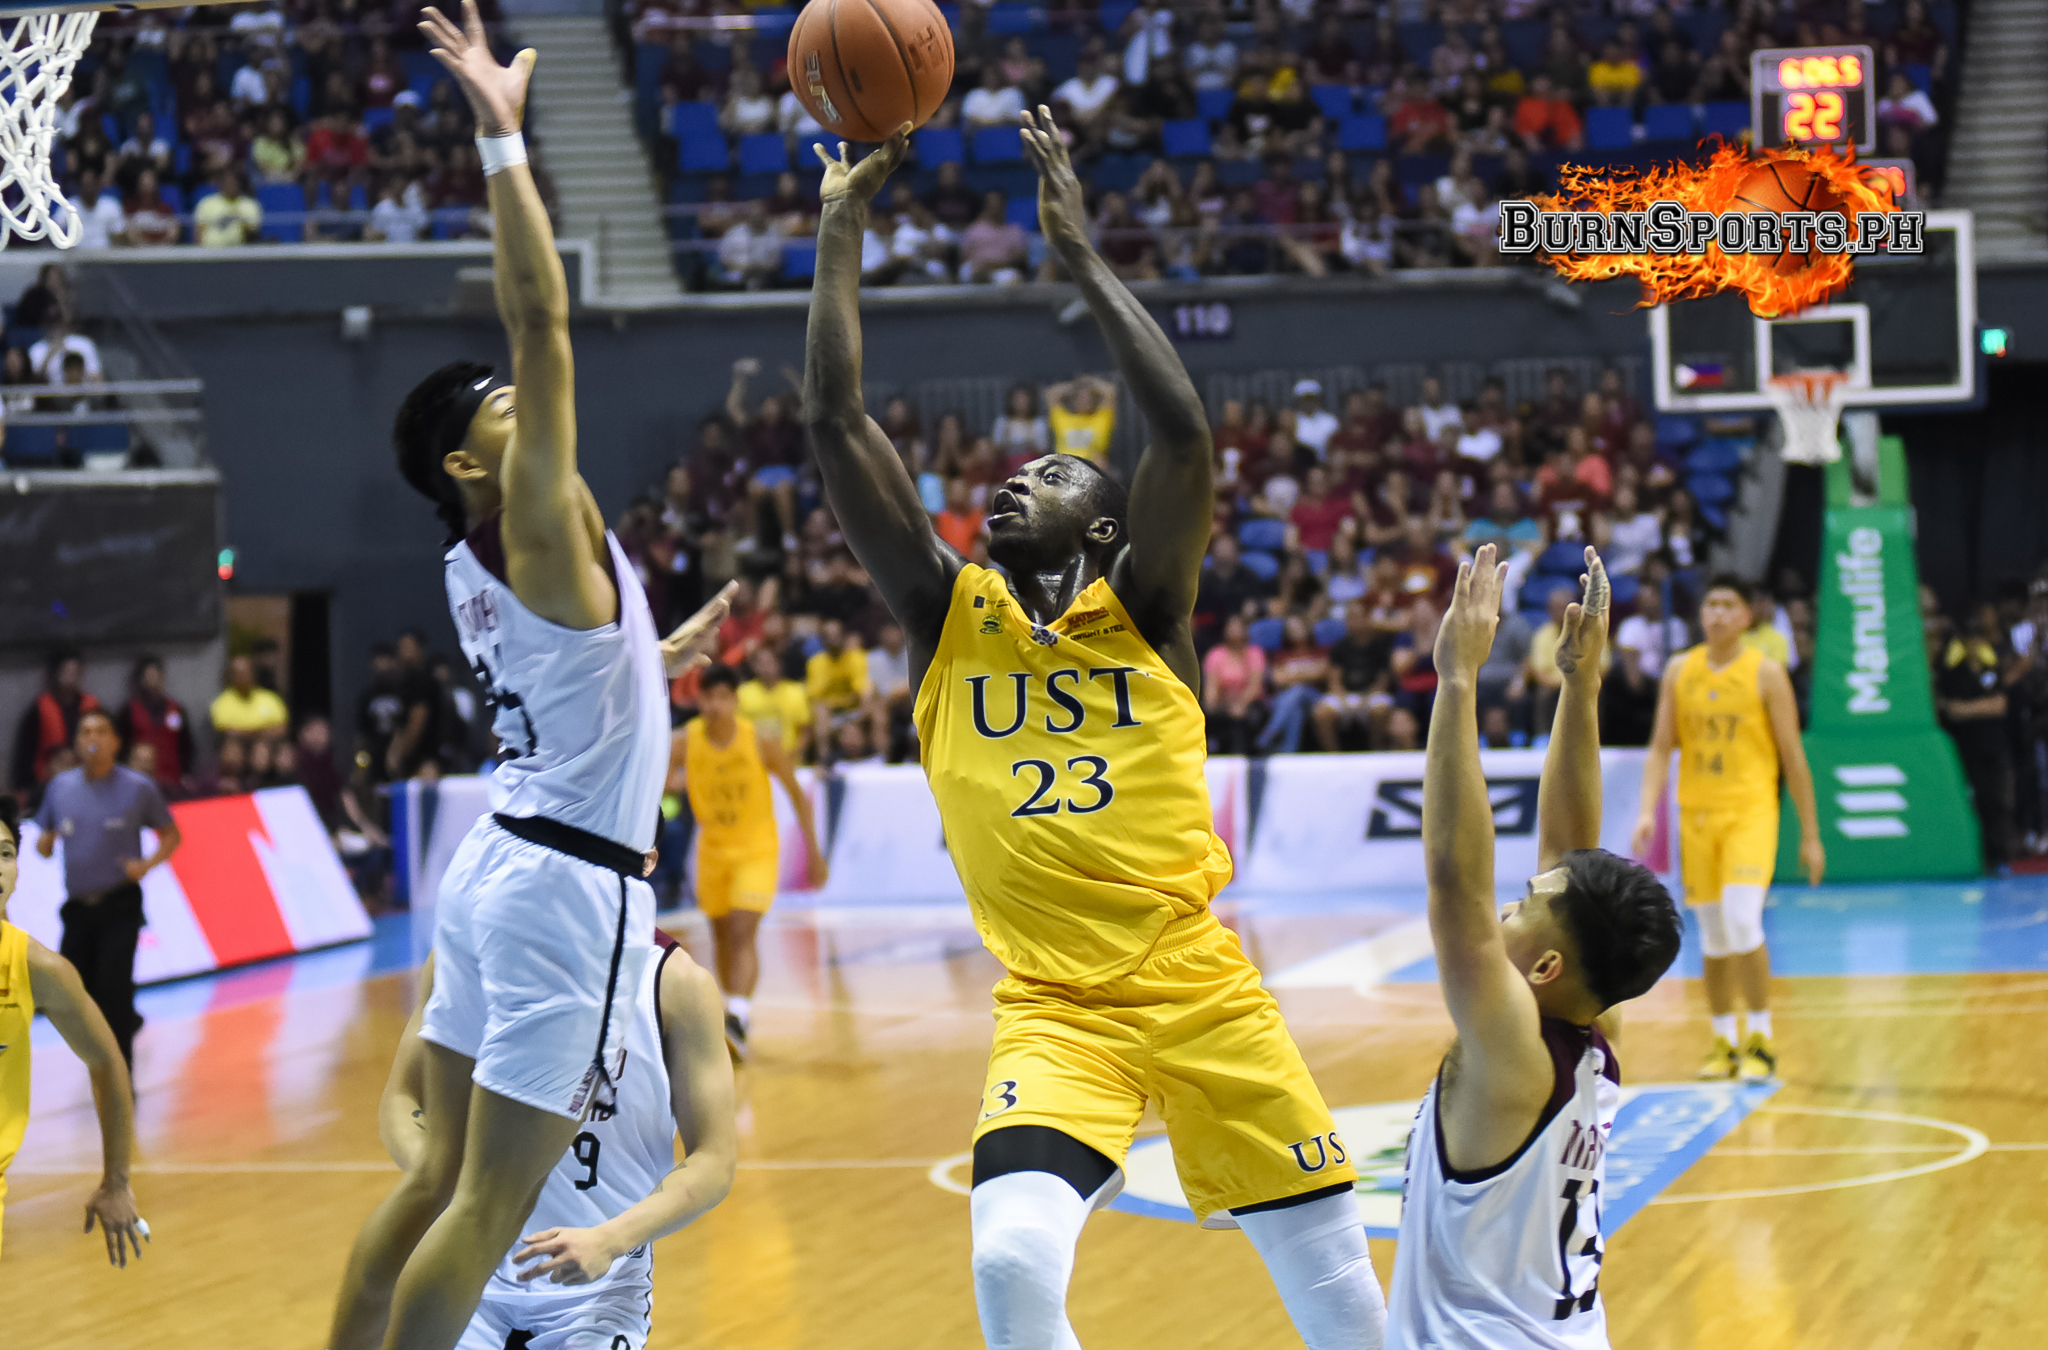 UST stays impressive with 16-point win over UP